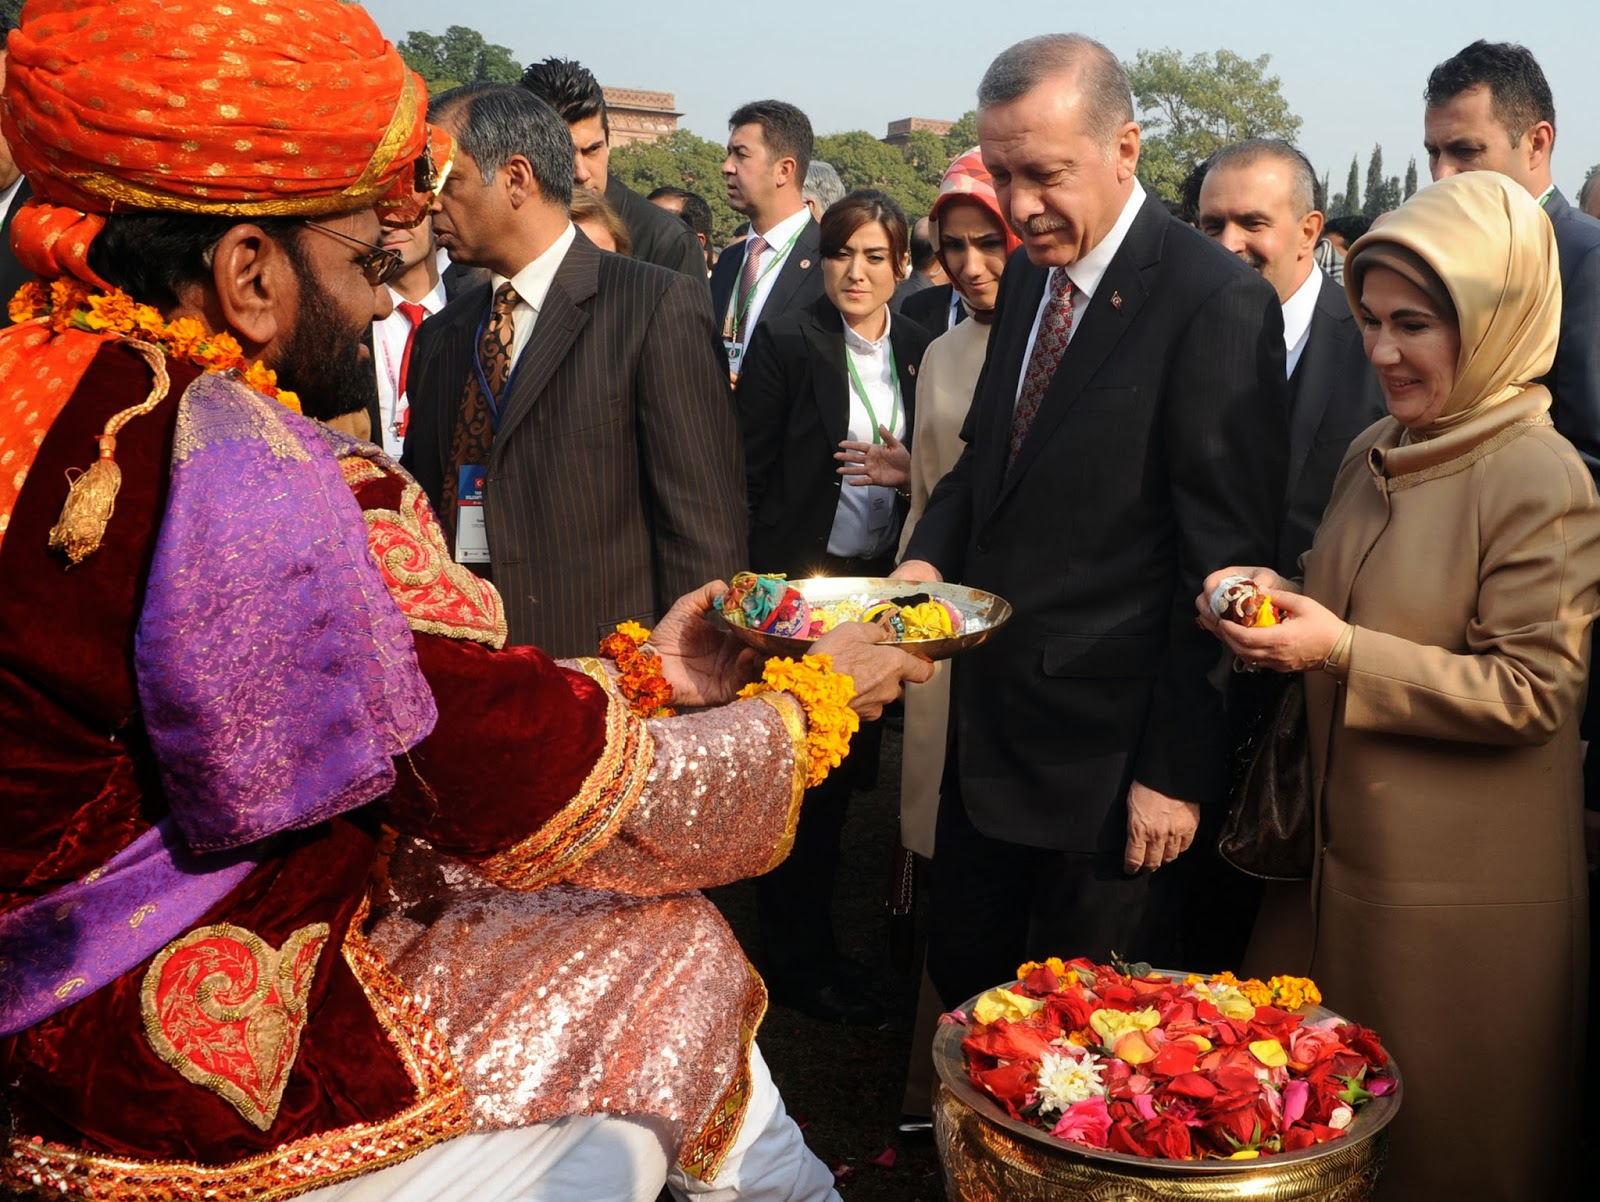 Aitchison, Business, Chief Minister, College, Diplomacy, Education, International Relation, Lahore, Pakistan, Politician, Politics, Prime Minister, Punjab, Recep Tayyip Erdogan, Shahbaz Sharif, Trade, Turky, Visit,